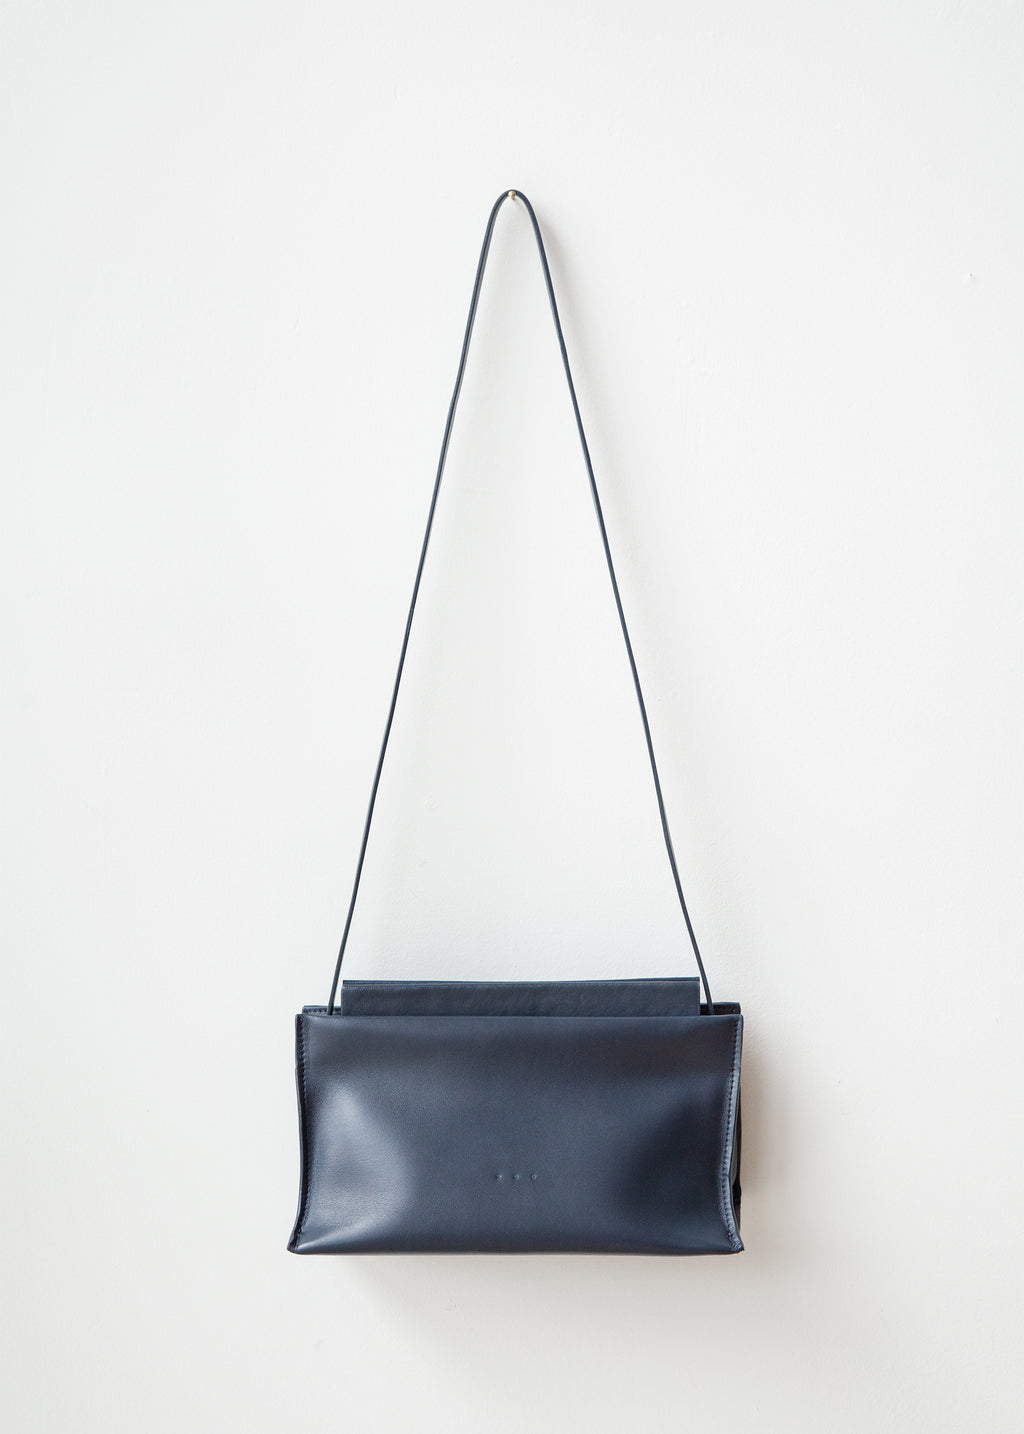 Aesther Ekme Slope Clutch Dress Blue - SOLD OUT